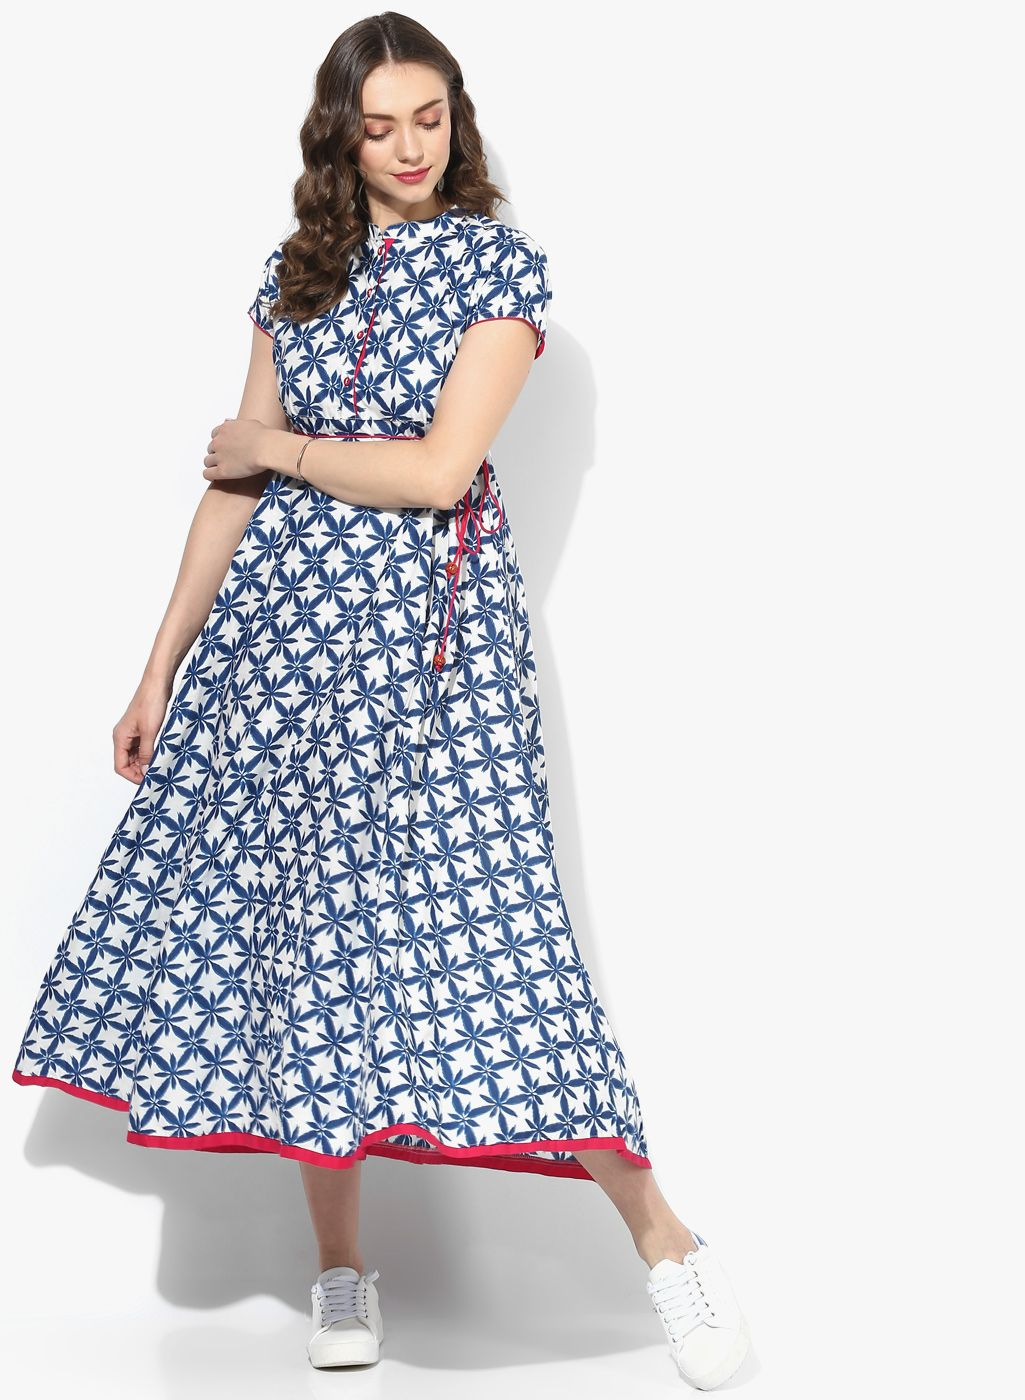 daa651d695c73 Floral Print Flared Kurta With Dori Belt #FloralPrint #Flared #Kurta ...